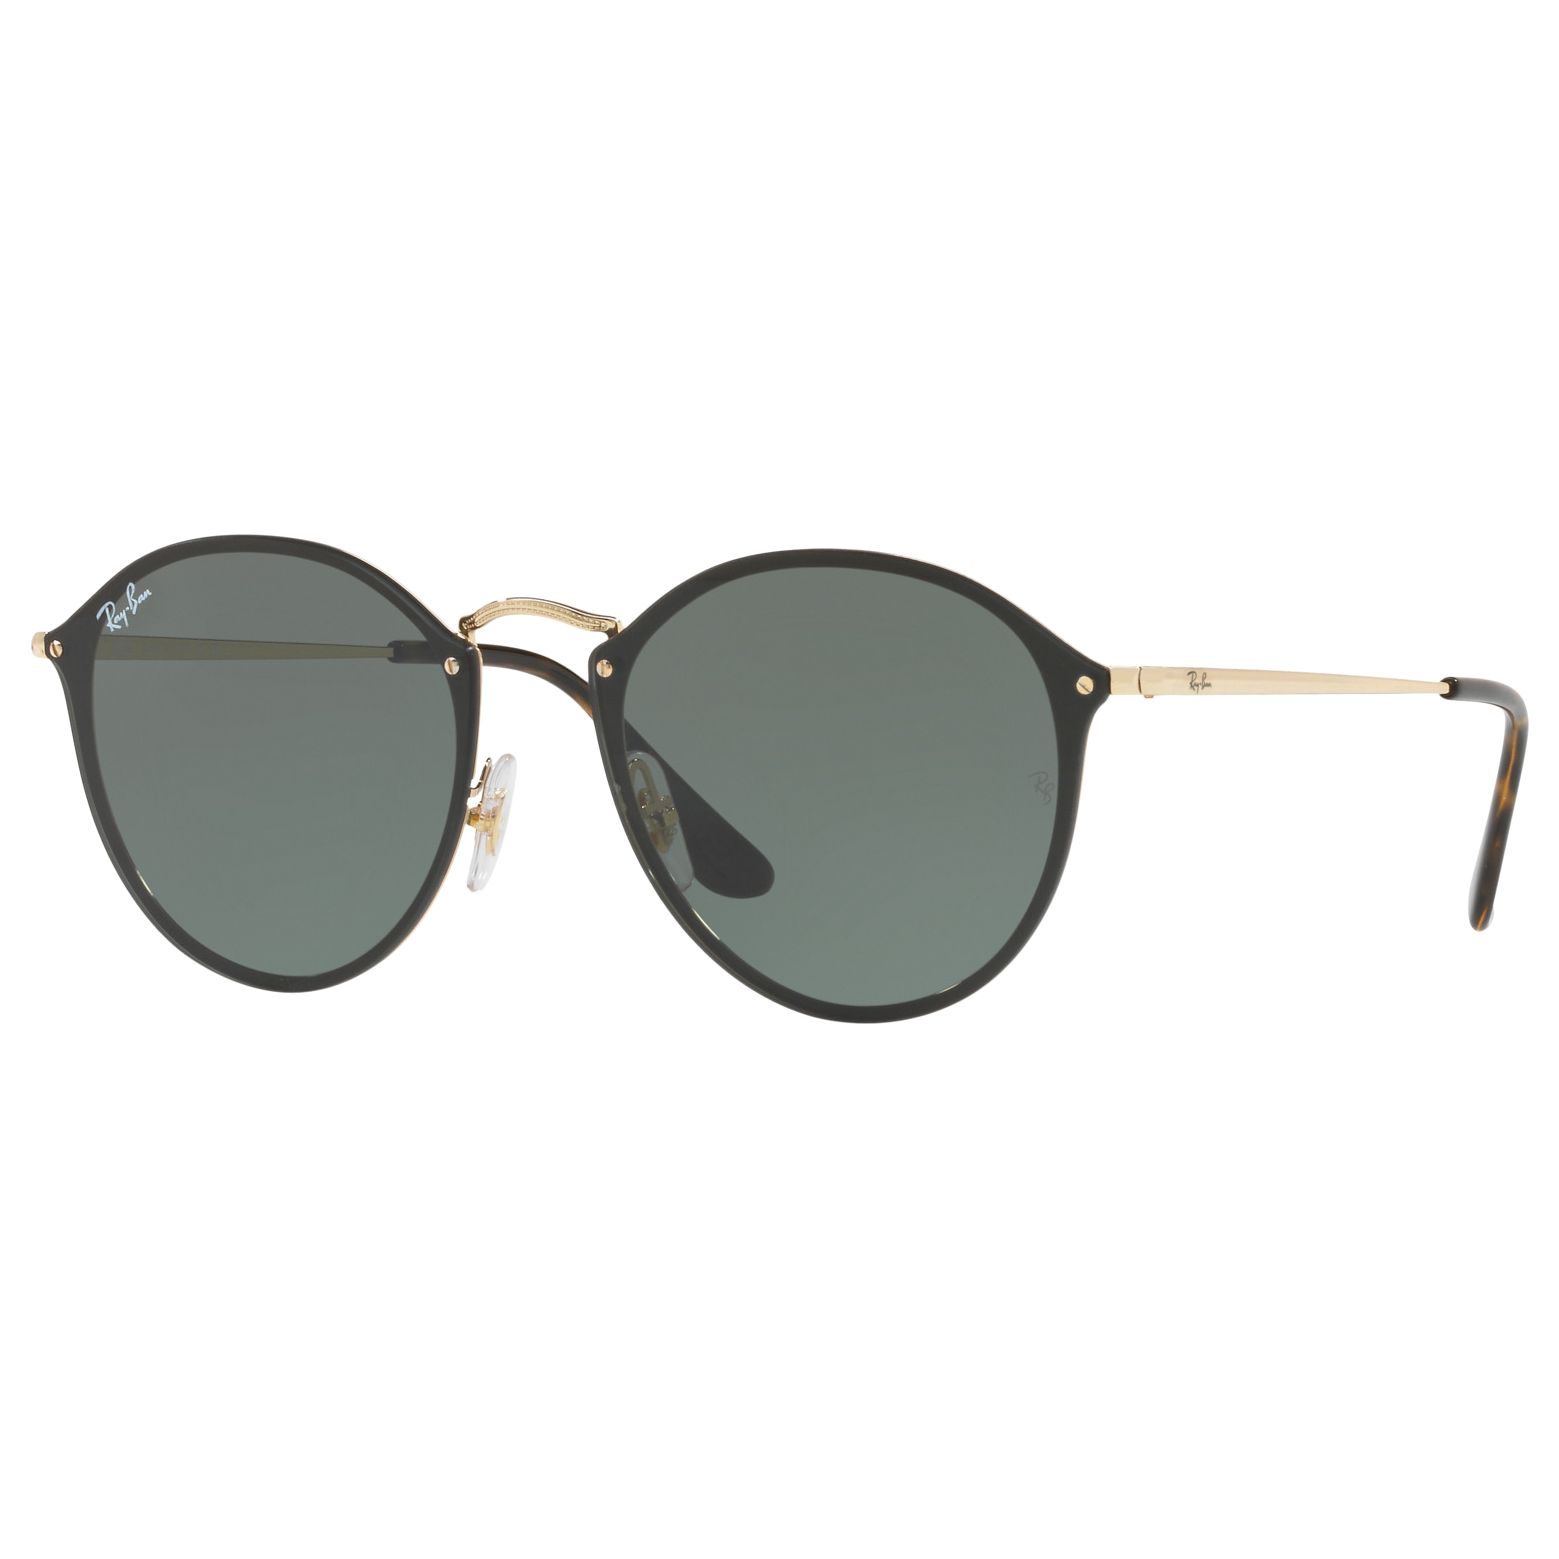 Ray-ban Ray-Ban RB3574N Men's Round Sunglasses